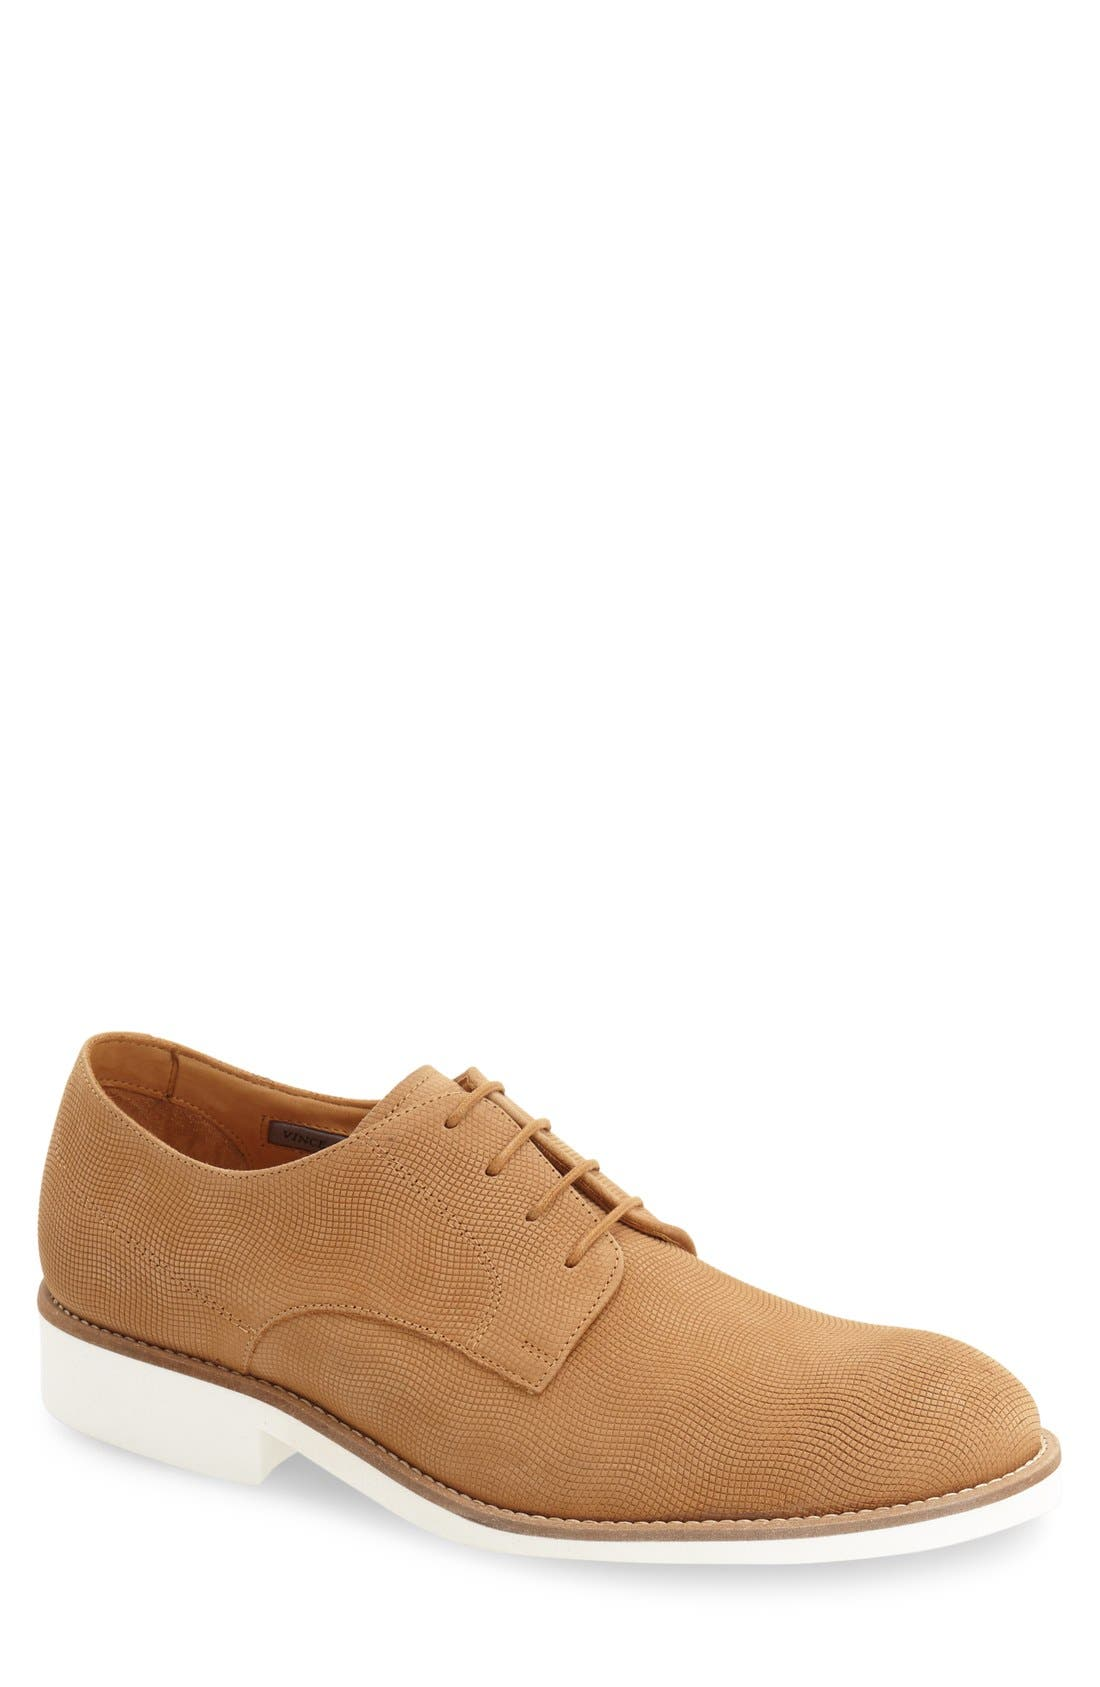 'Apexx' Nubuck Derby,                         Main,                         color, 200